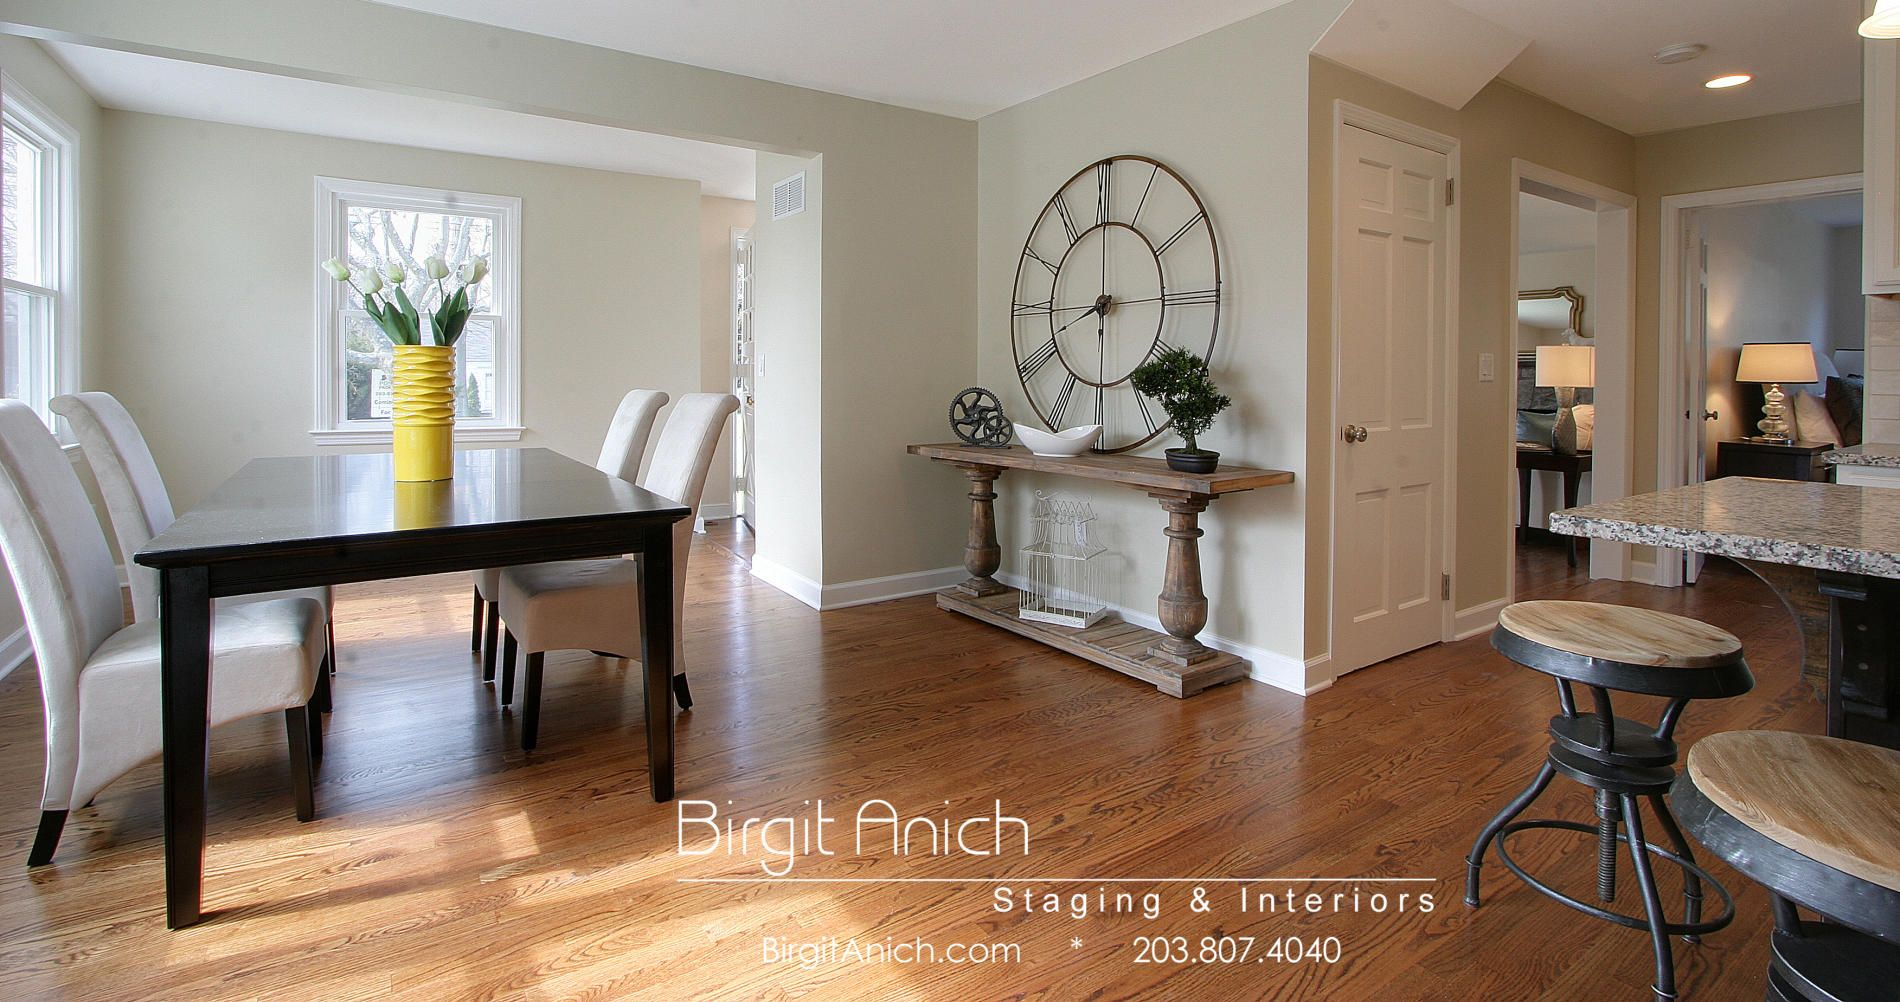 birgit anich staging interiors llc soundview connecticut home staging